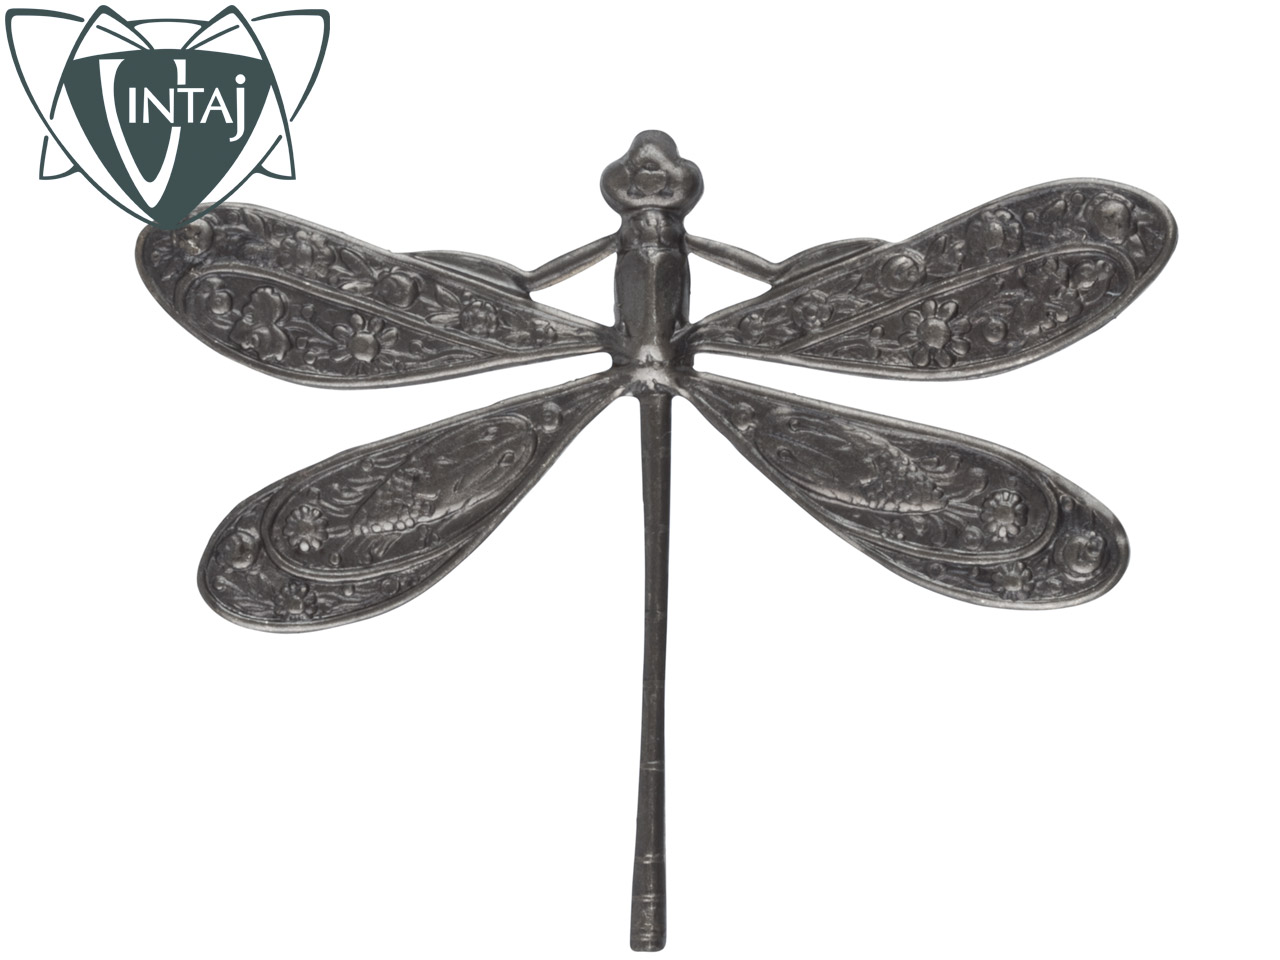 Vintaj Brass Ornate Dragonfly